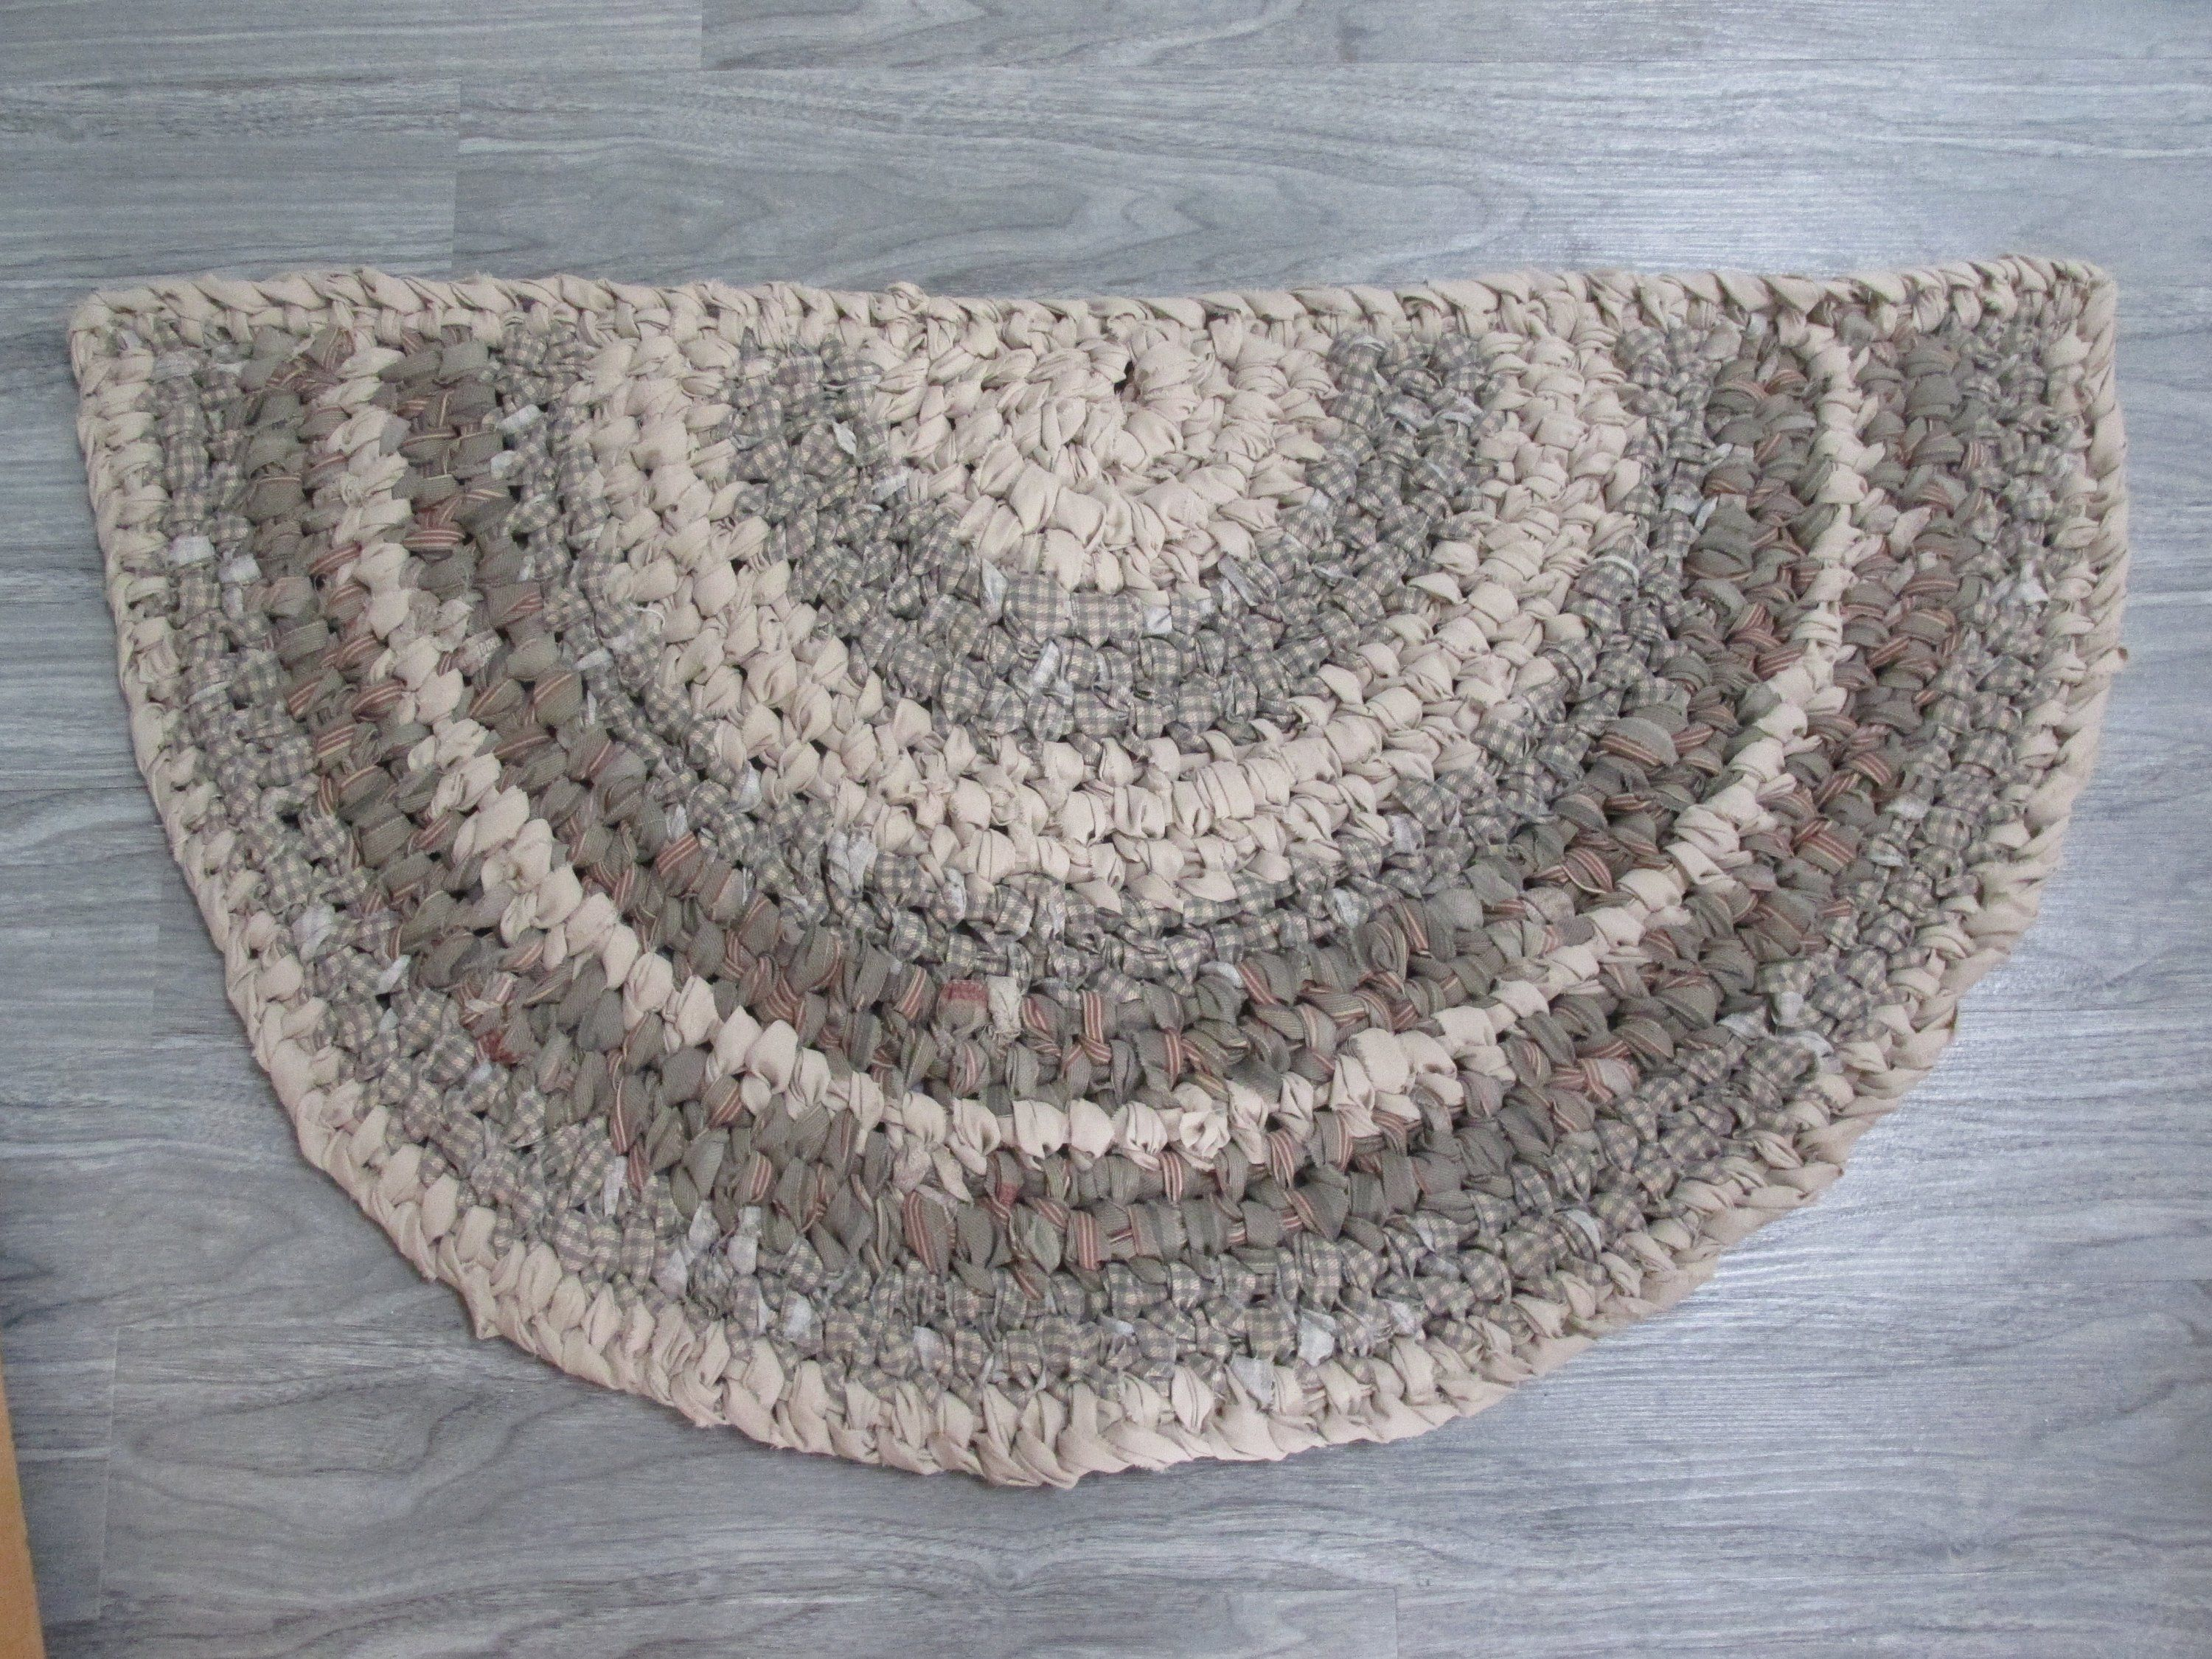 Handmade Half Moon Half Circle Amish Knot Toothbrush Rag Rug Bathroom Kitchen Cotton Rug Handmade Rag Rug Small Boho Rugs Rugs